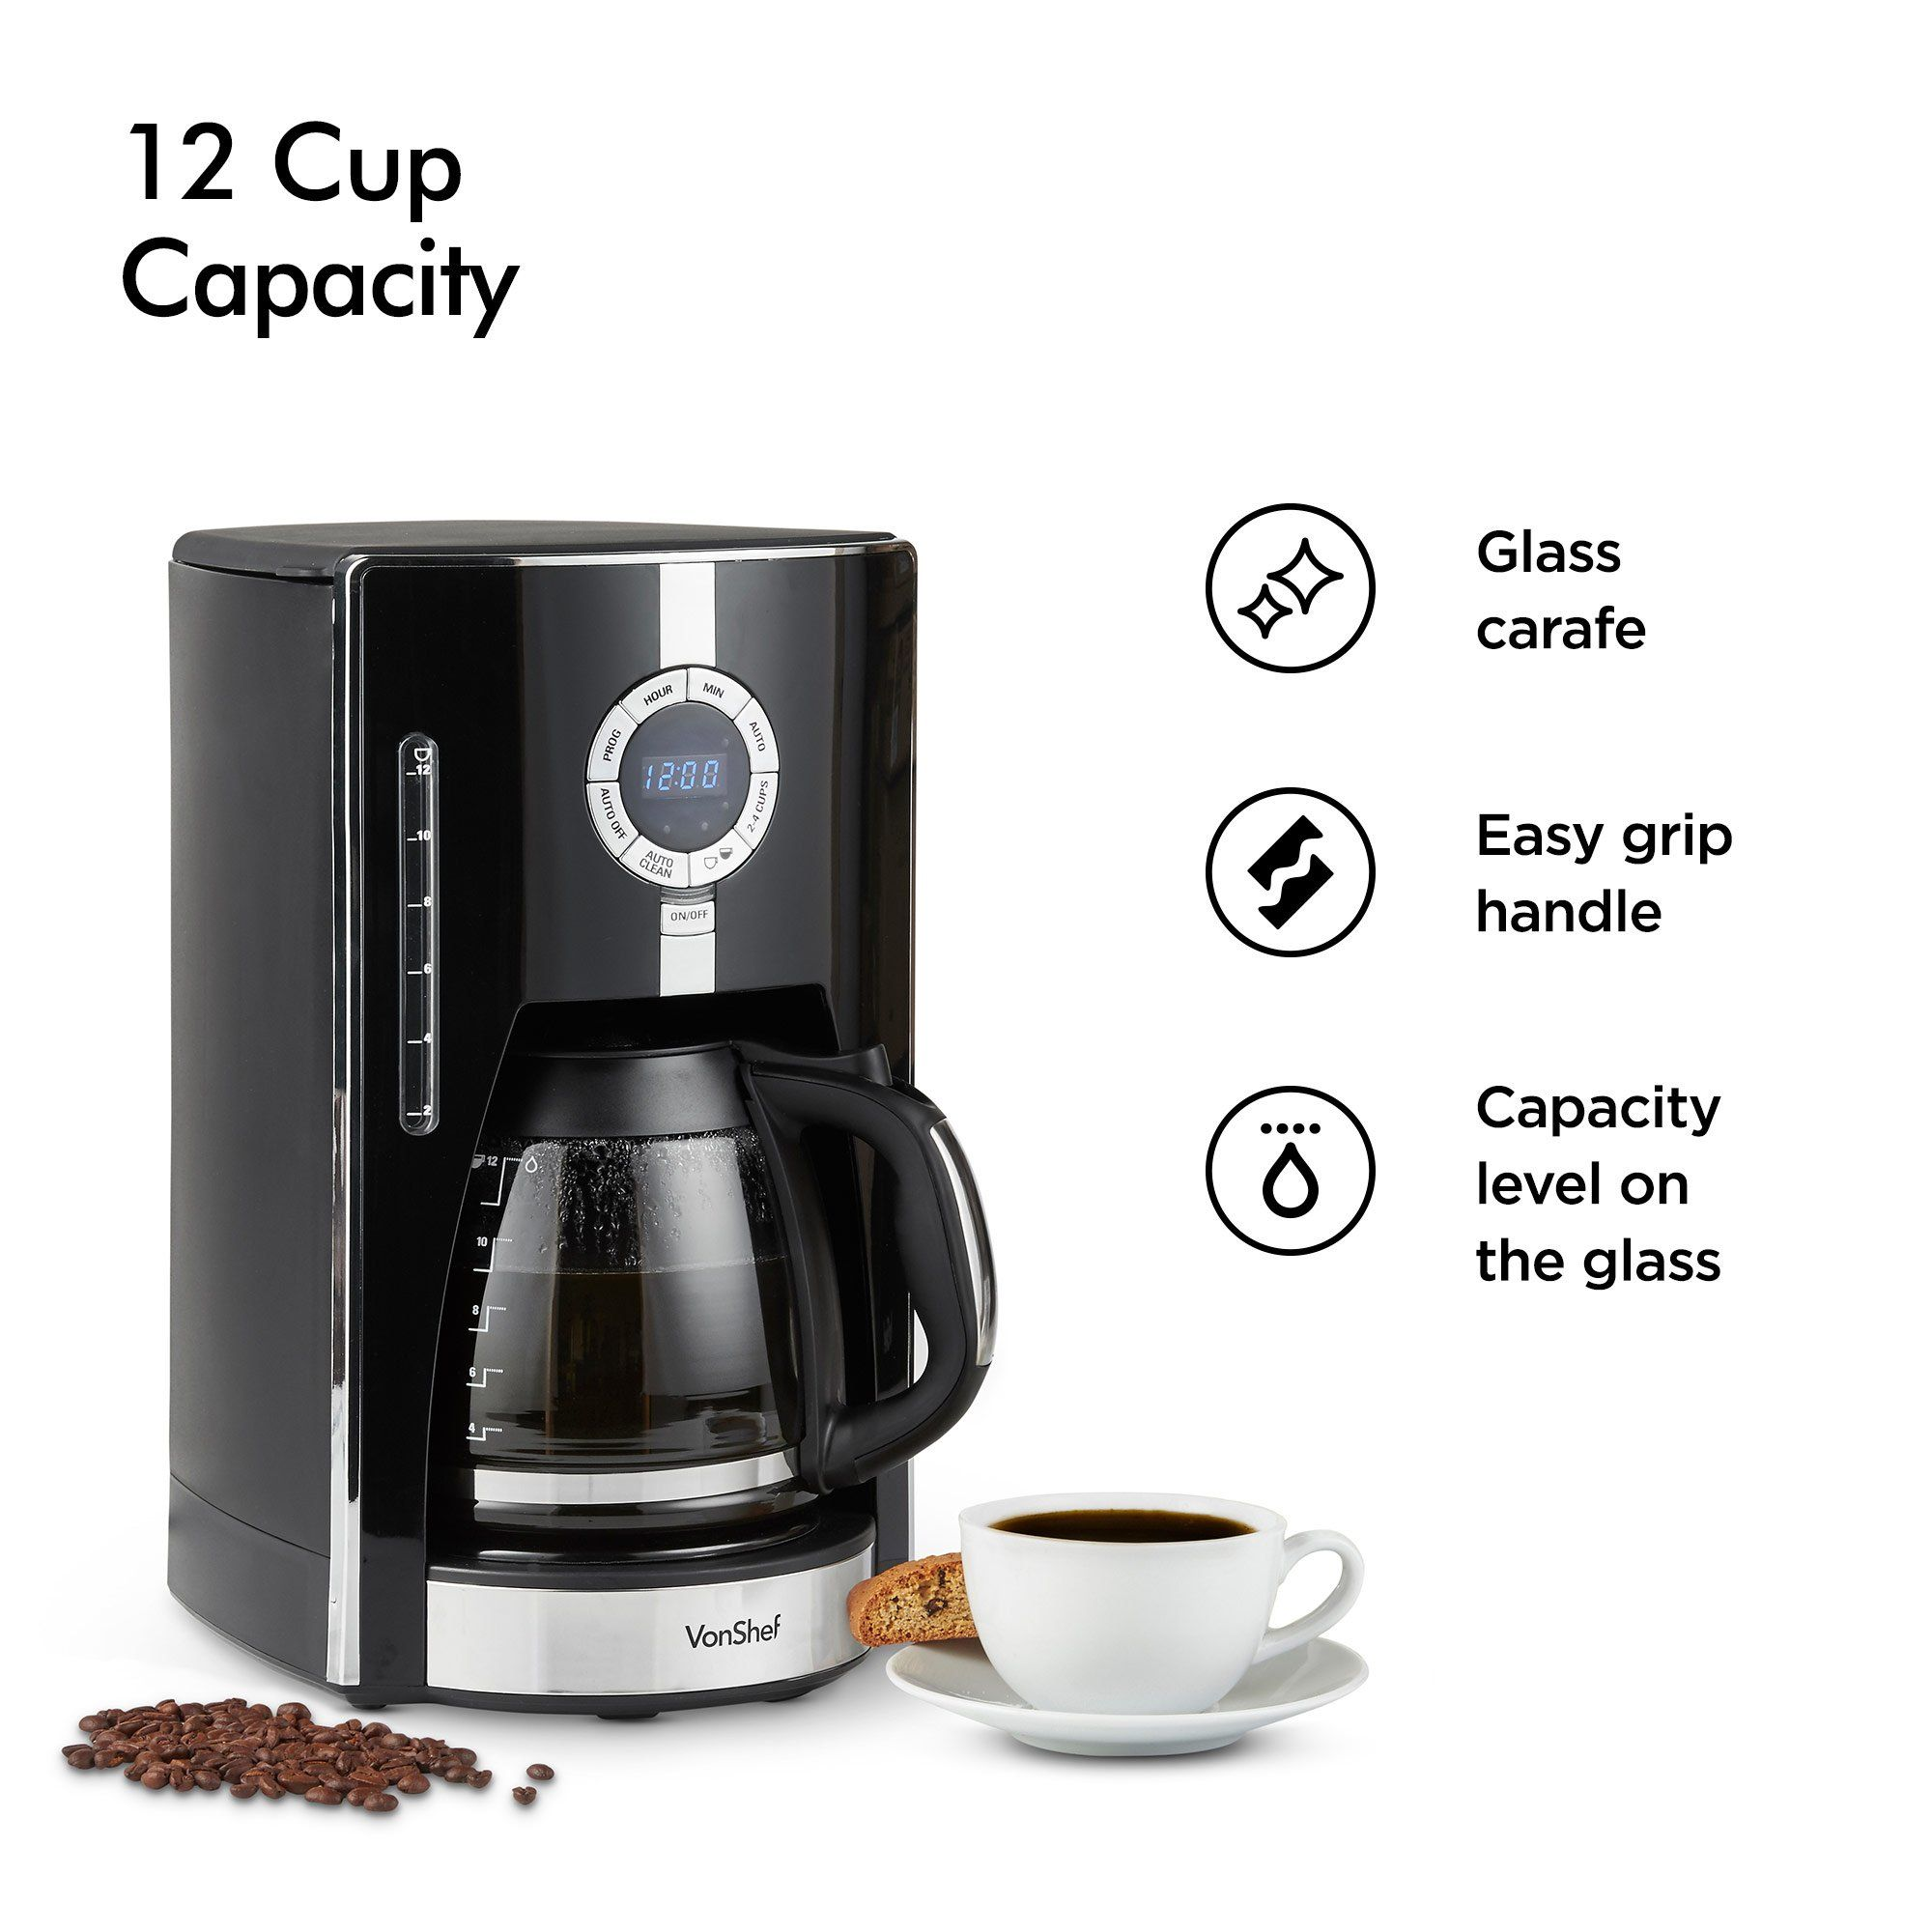 Vonshef Digital Filter Coffee Maker Brewer 12 Cup Machine With Glass Carafe Features Programmable Timer Brew Strength S Coffee Maker Glass Carafe Filter Coffee